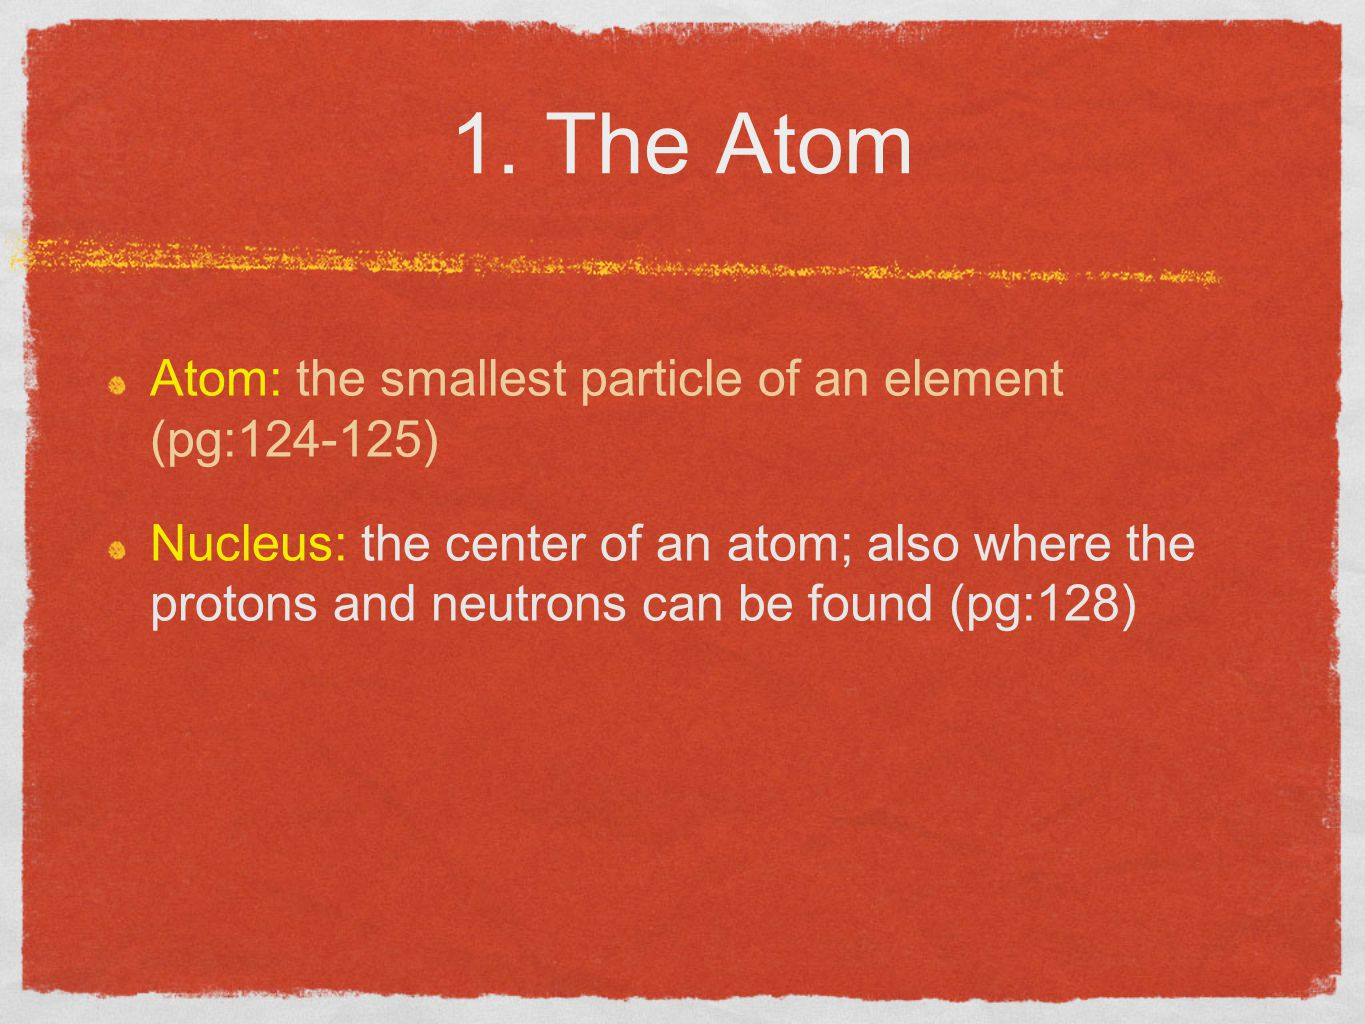 1. The Atom Atom: the smallest particle of an element (pg:124-125)